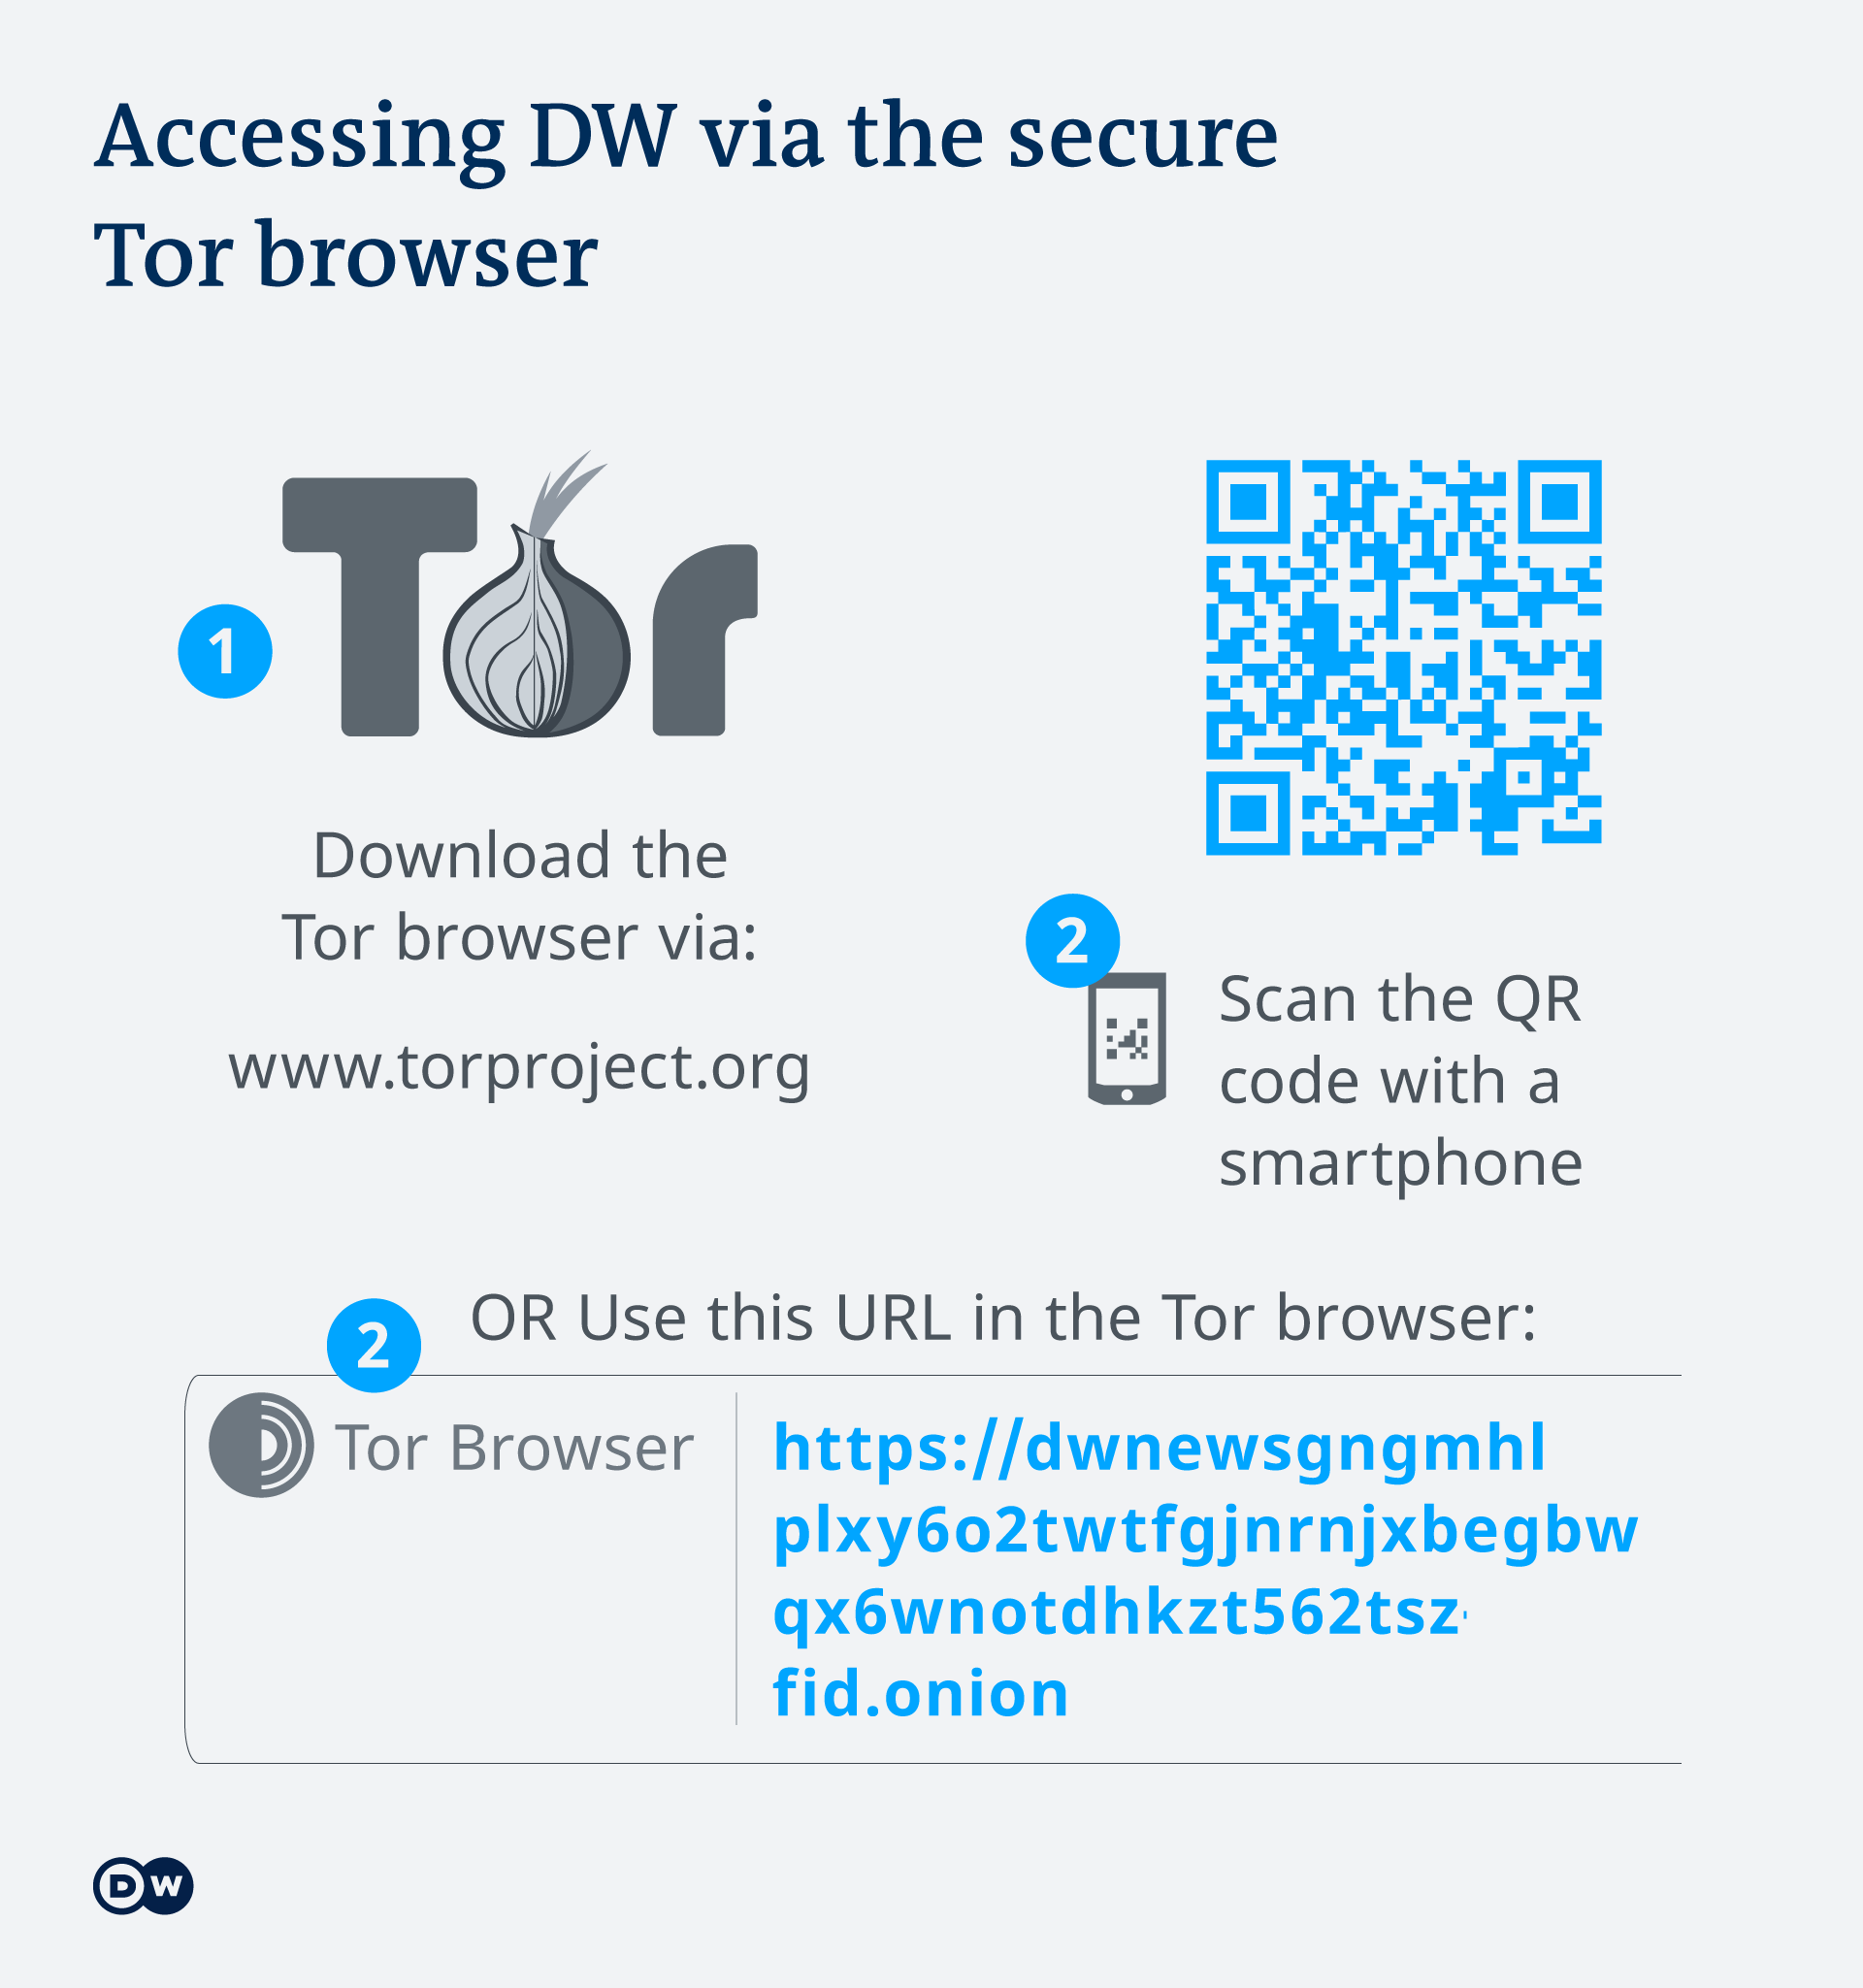 Infographic explaining how to access DW via the secure Tor browser